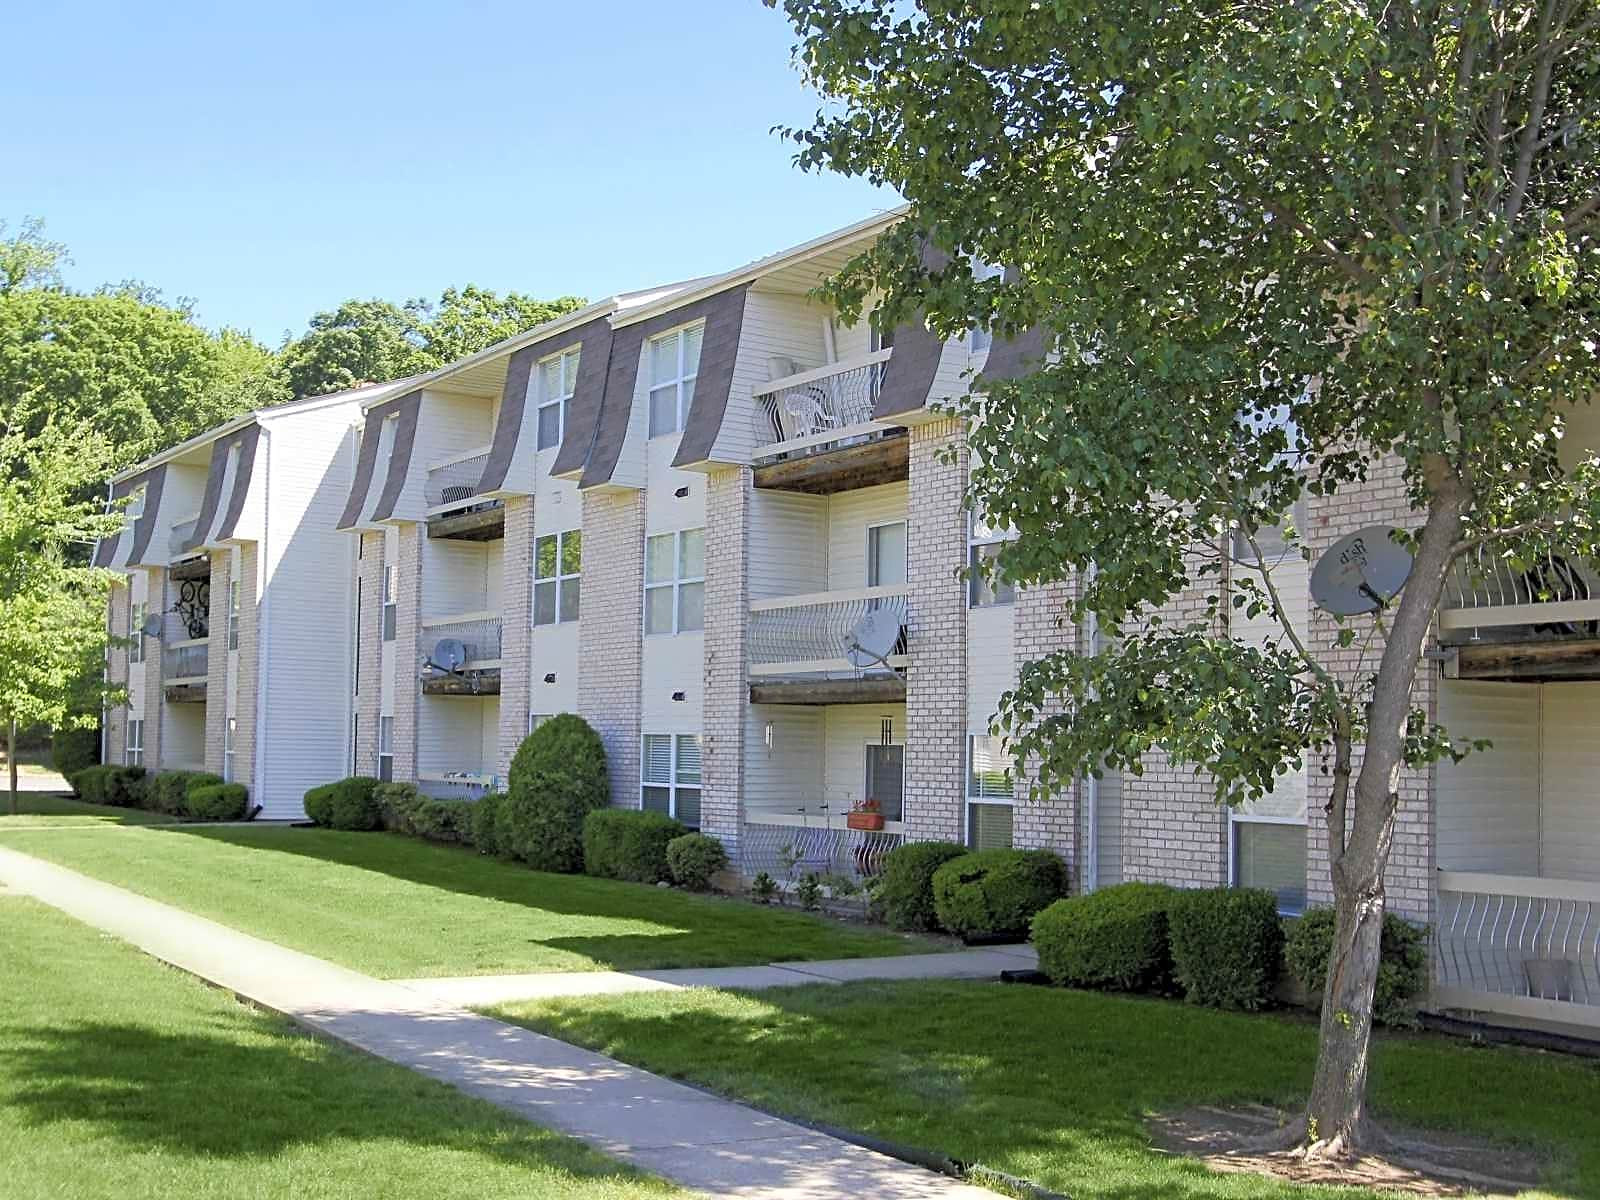 monmouth junction senior personals See all 13 apartments in monmouth junction, nj currently available for rent each apartmentscom listing has verified availability, rental rates, photos, floor plans and more.